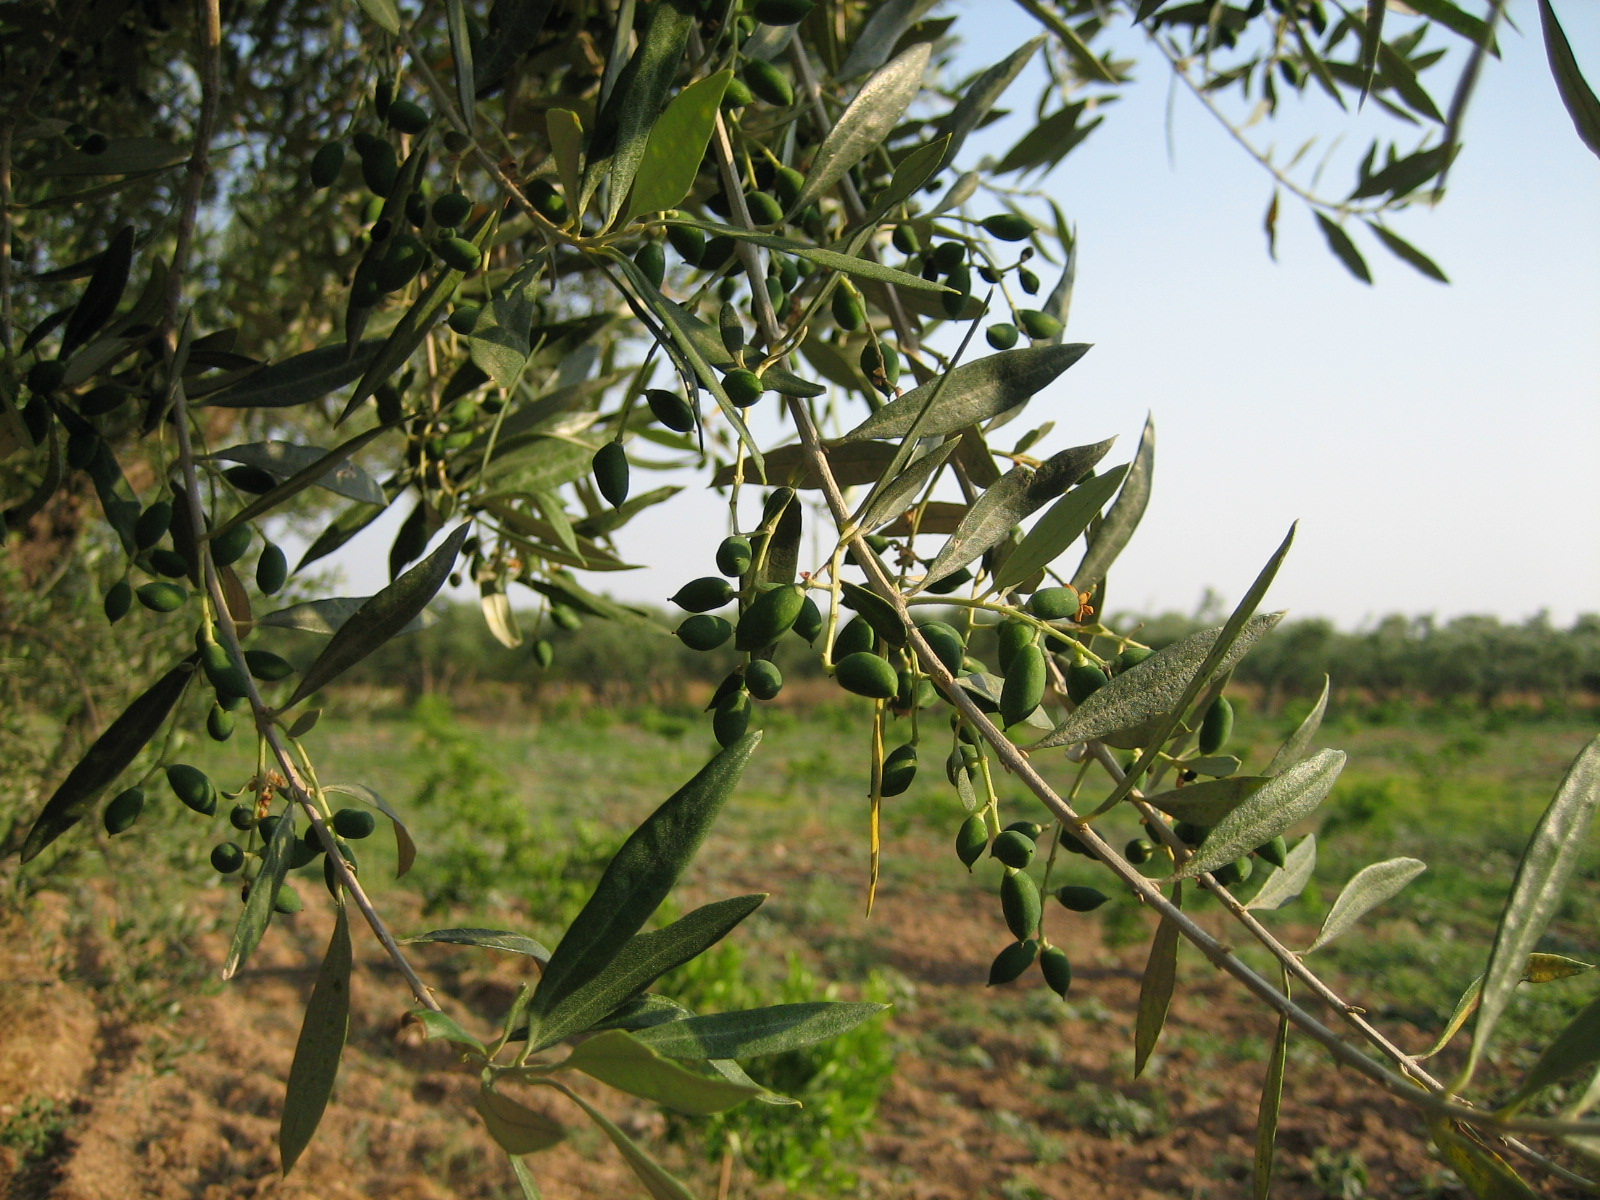 Kouzini olives getting ready for the harvest!